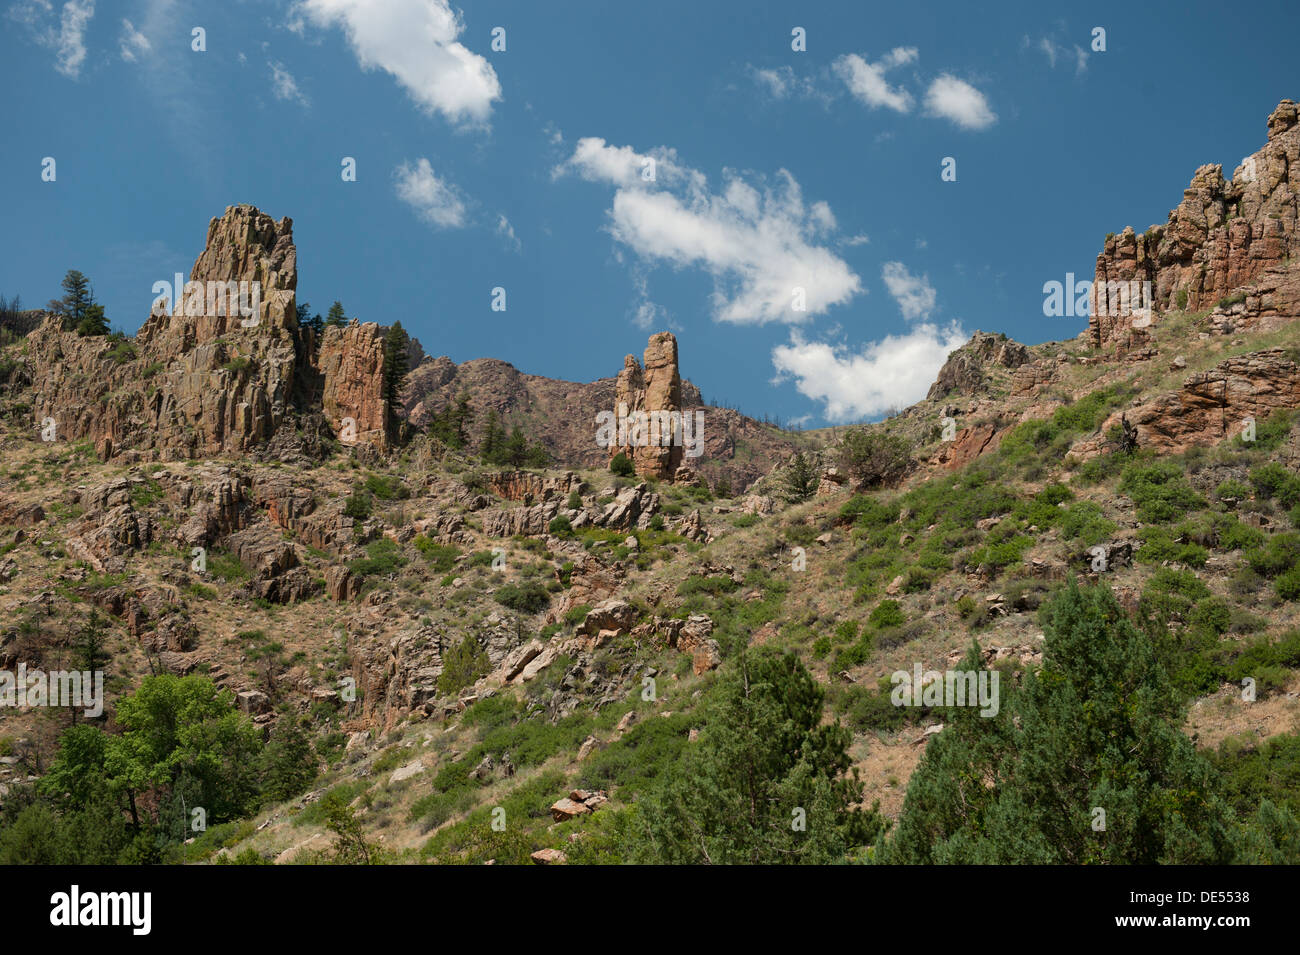 Some interesting rock spires next to Colorado's Cache La Poudre River, just west of the highway tunnel on State Route 14. - Stock Image